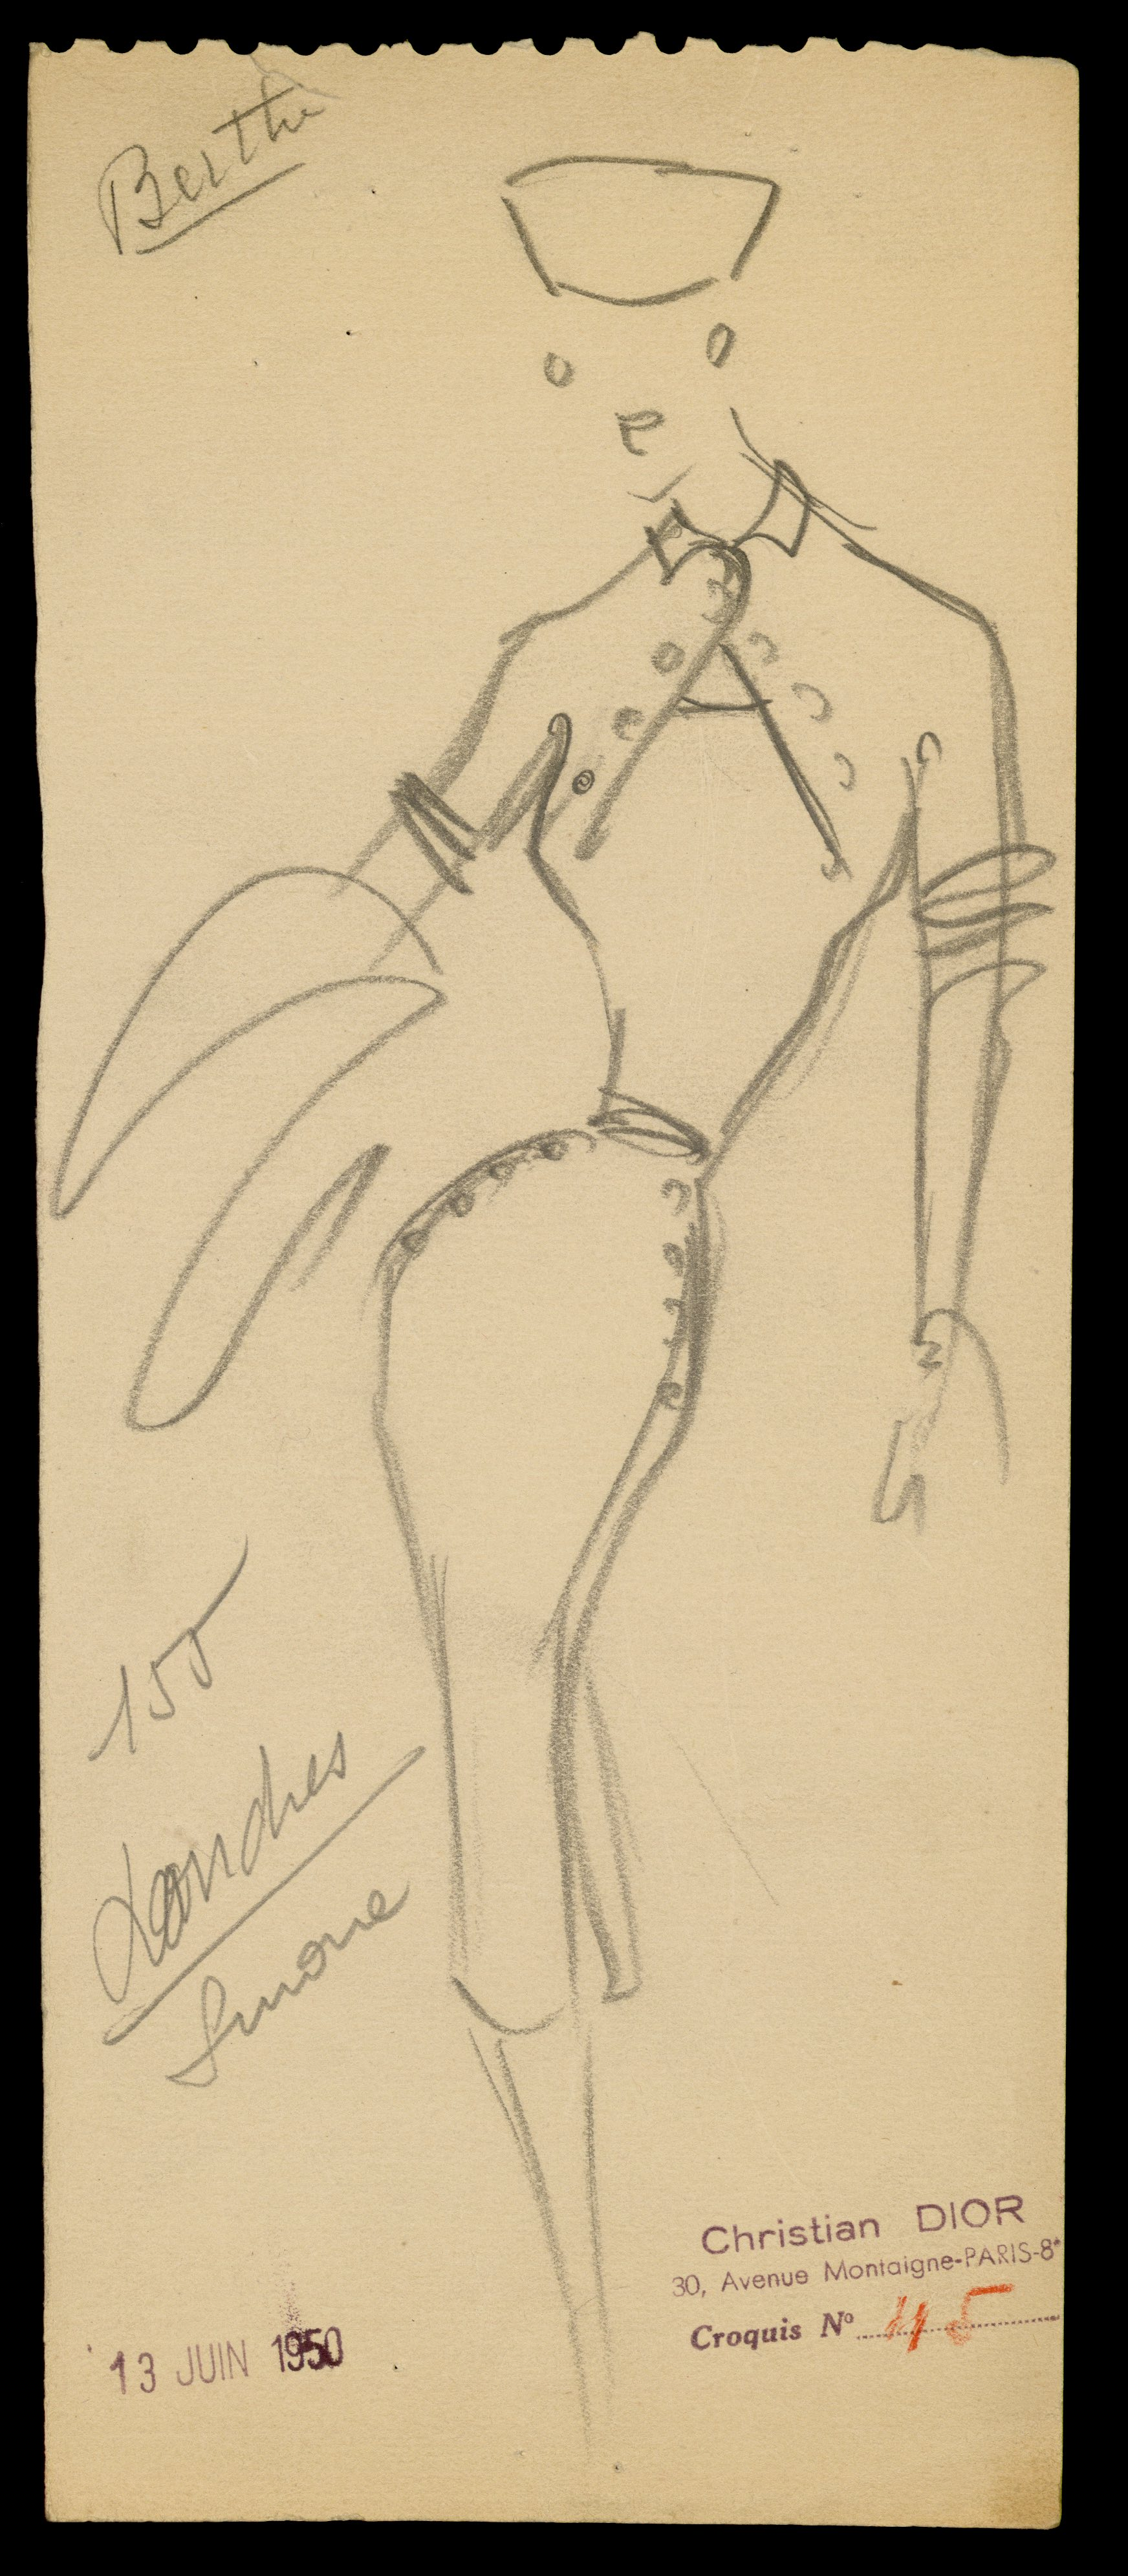 Sketch by Christian Dior for model Londres, Autumn-Winter 1950 Haute Couture collection © Christian Dior.jpg